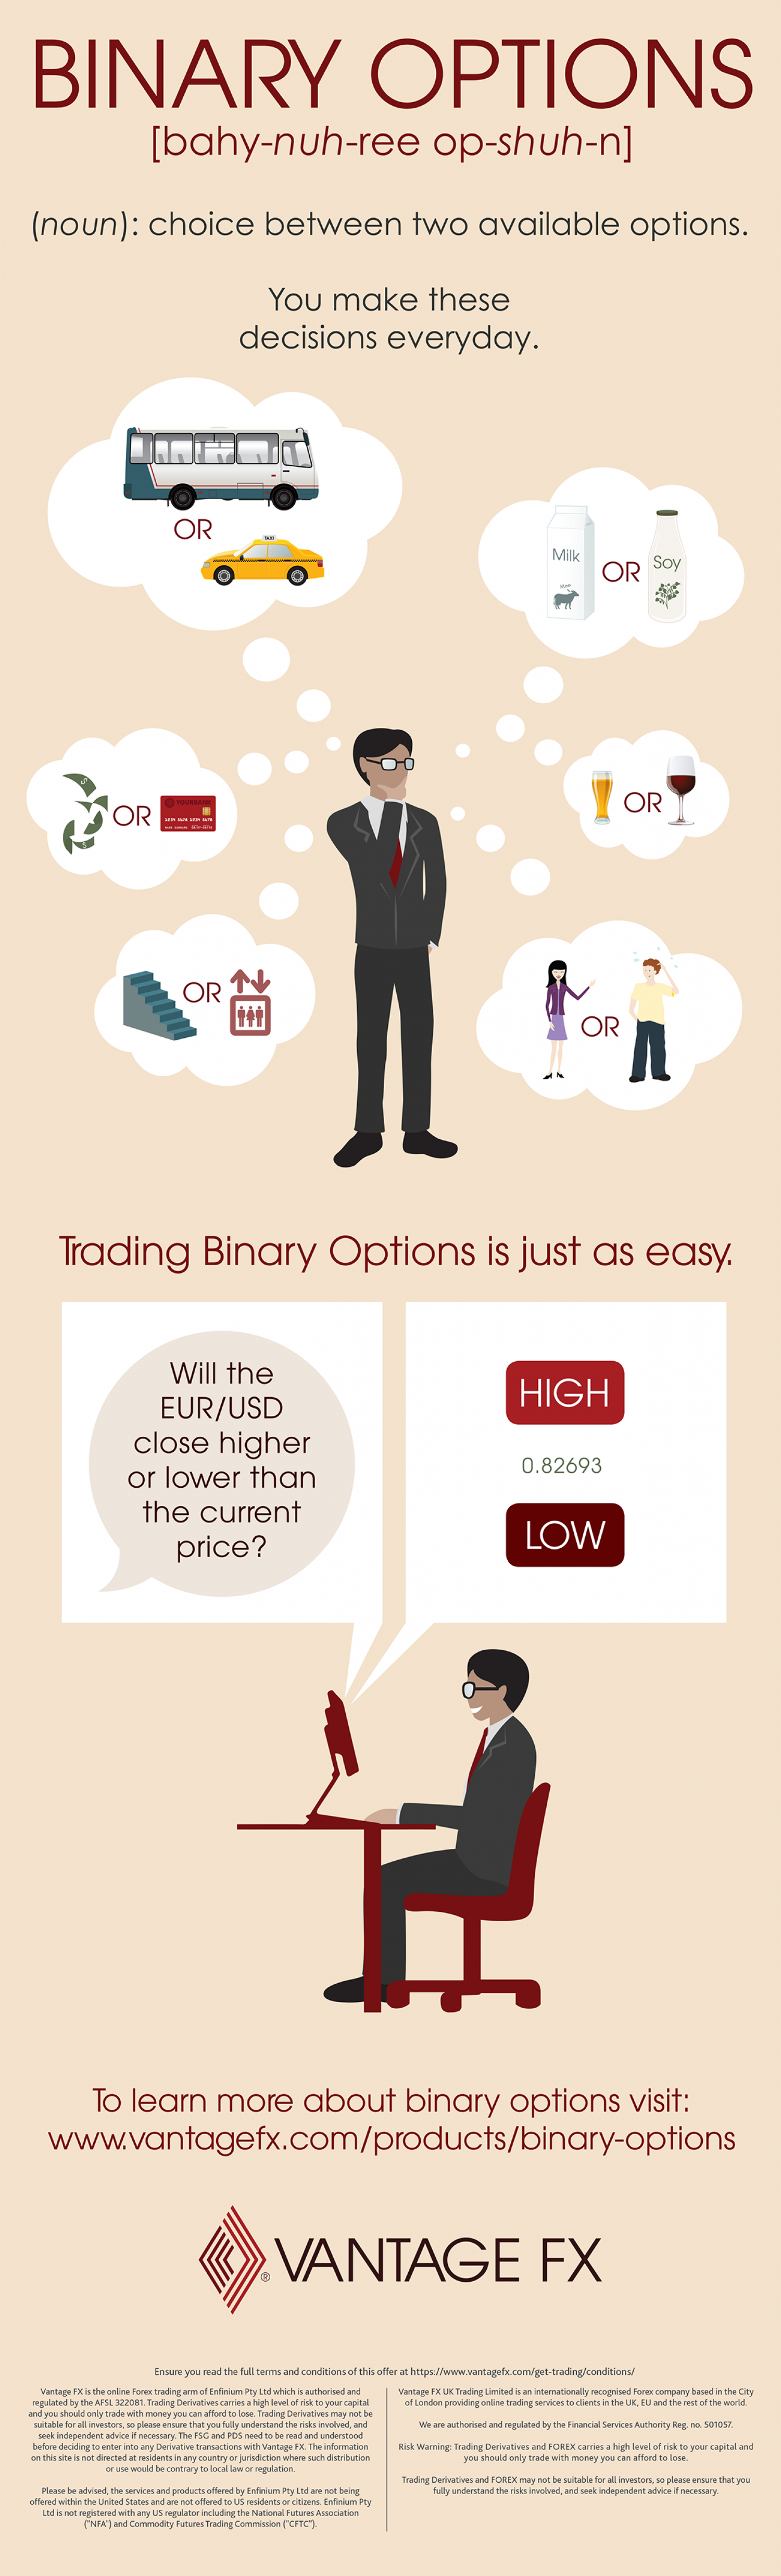 Why use binary options